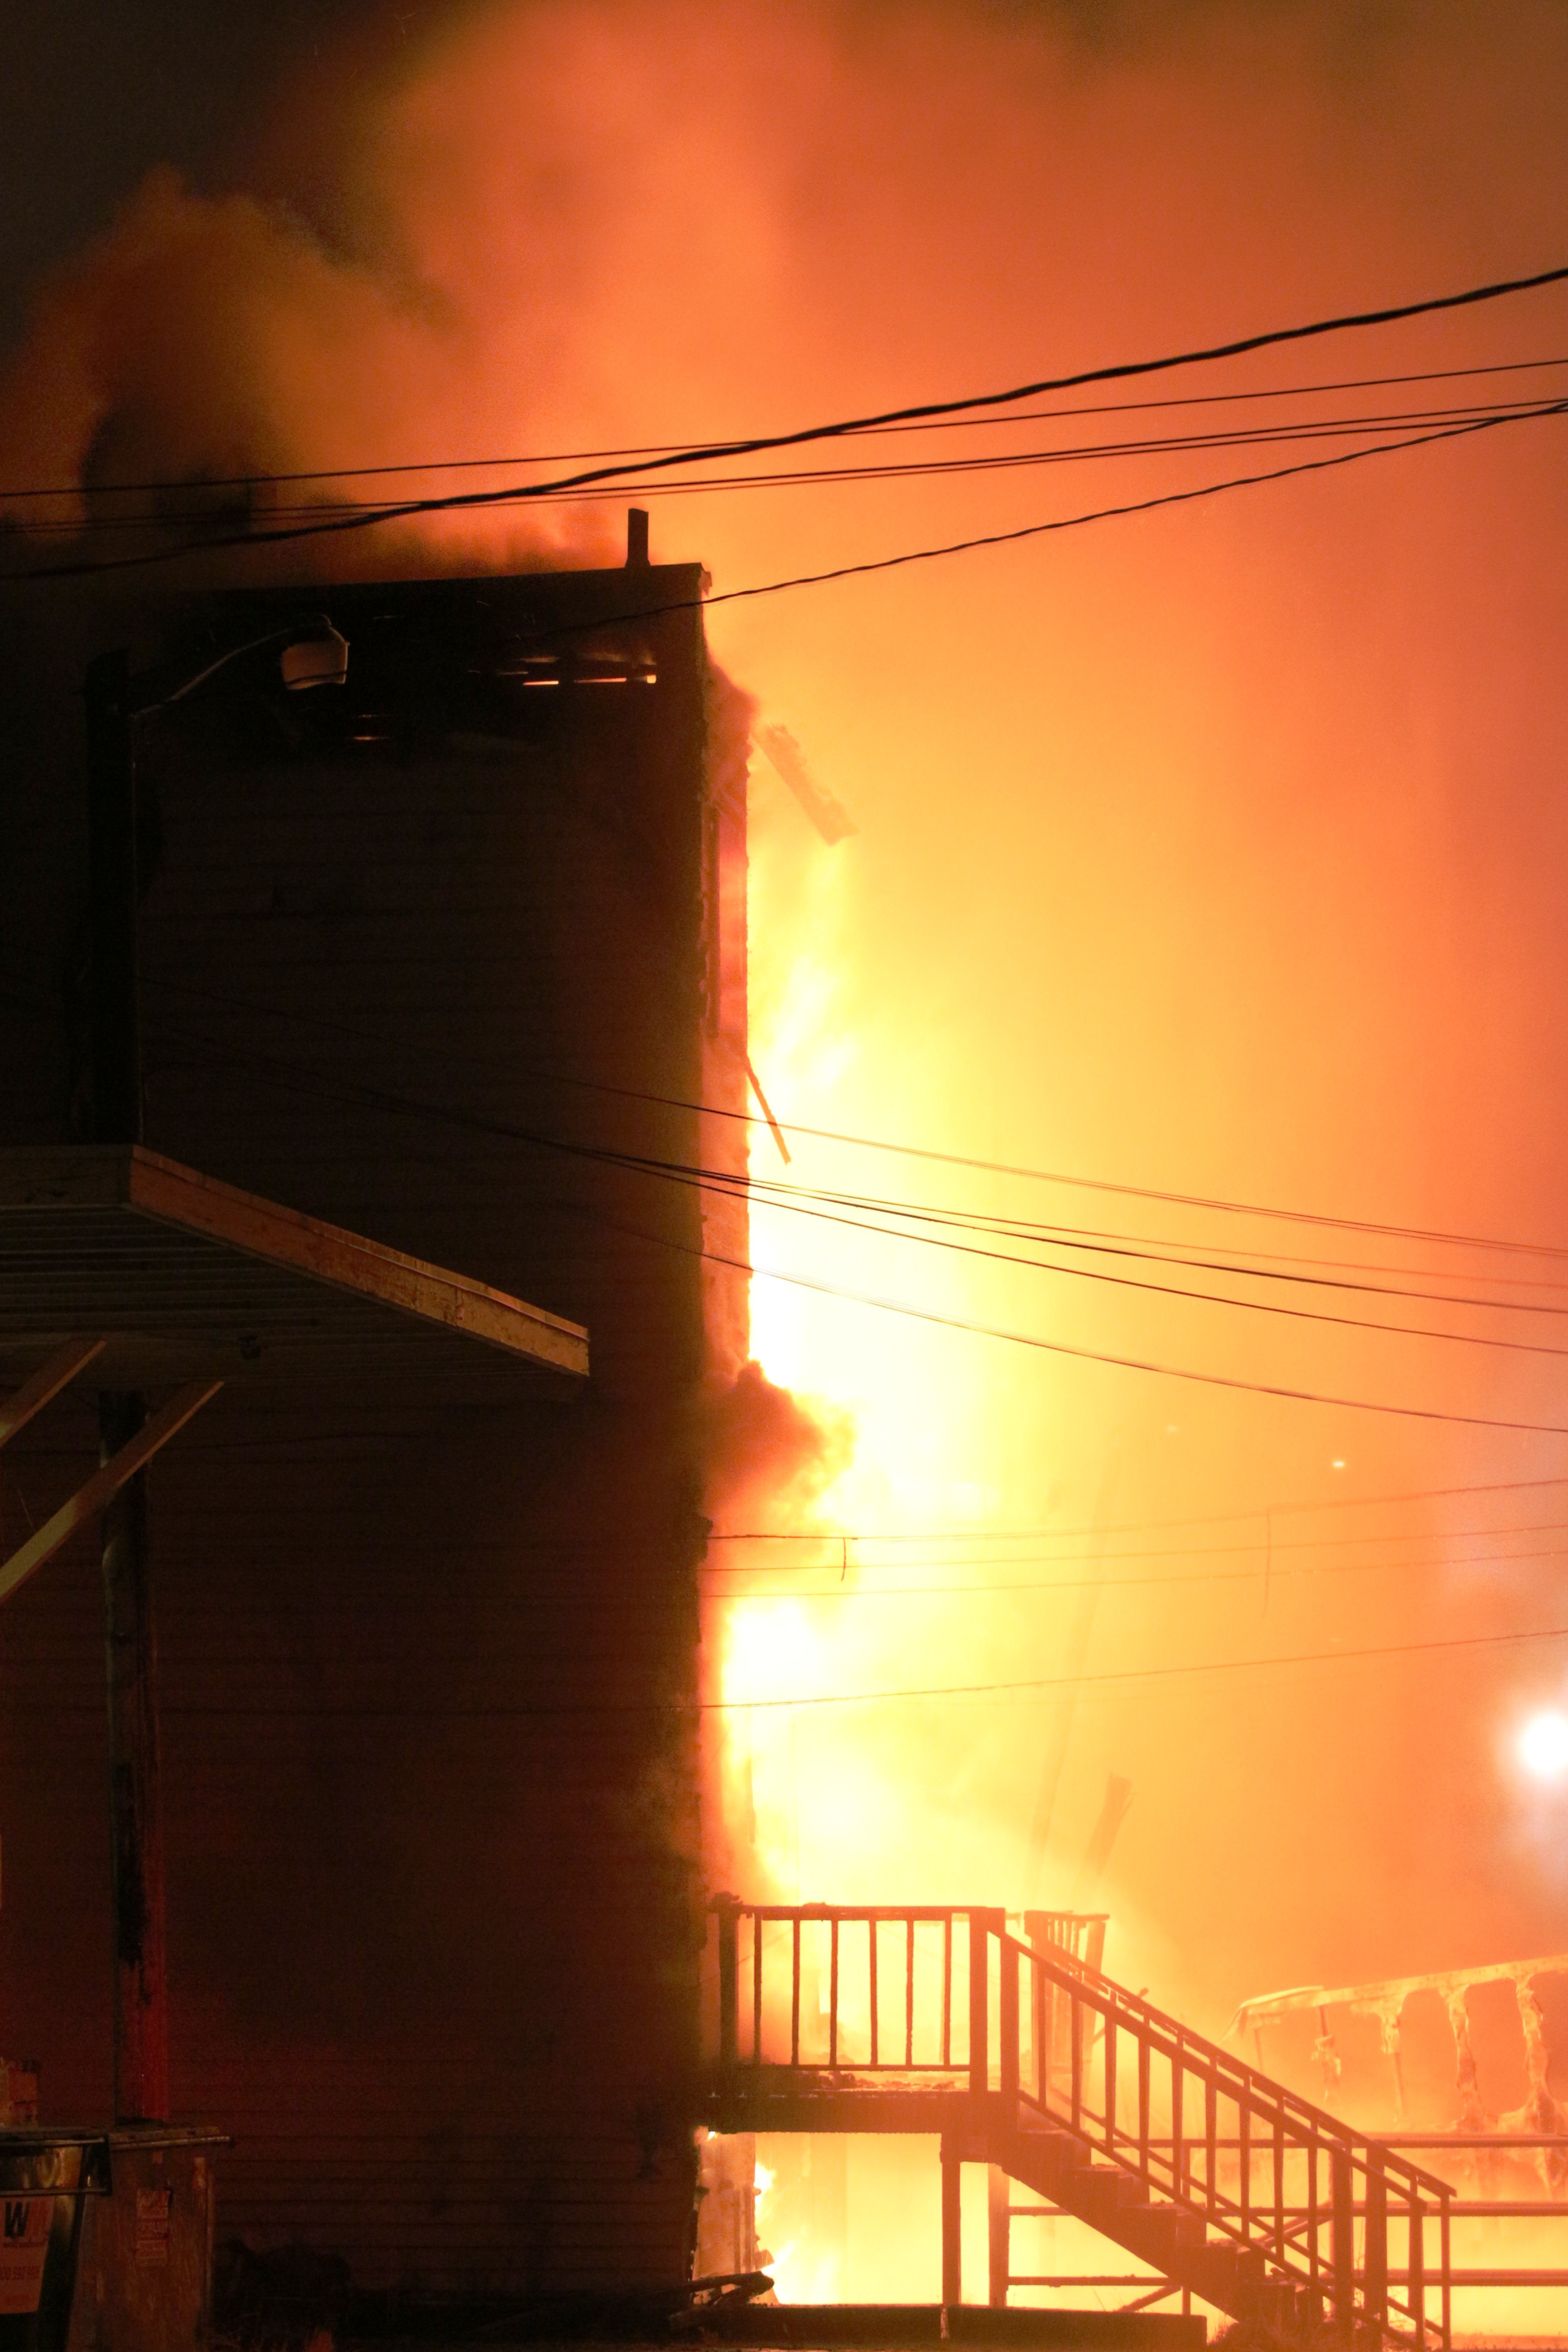 Everett fice Furniture Building Destroyed In 3 Alarm Fire